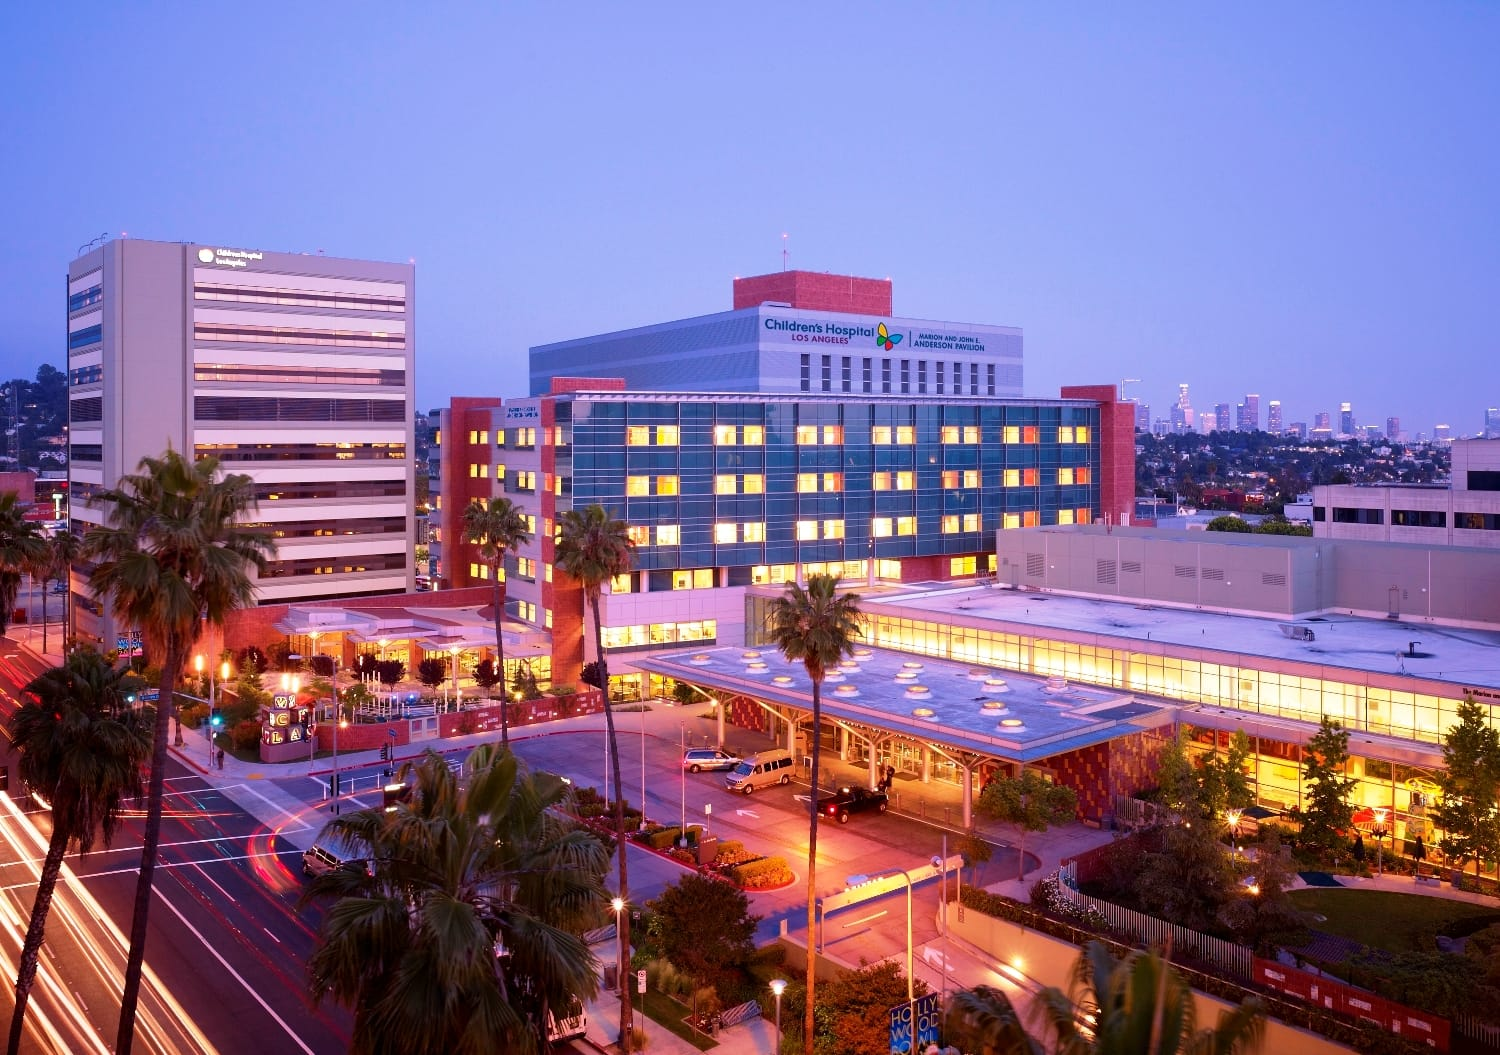 Children's Hospital Los Angeles at Dusk